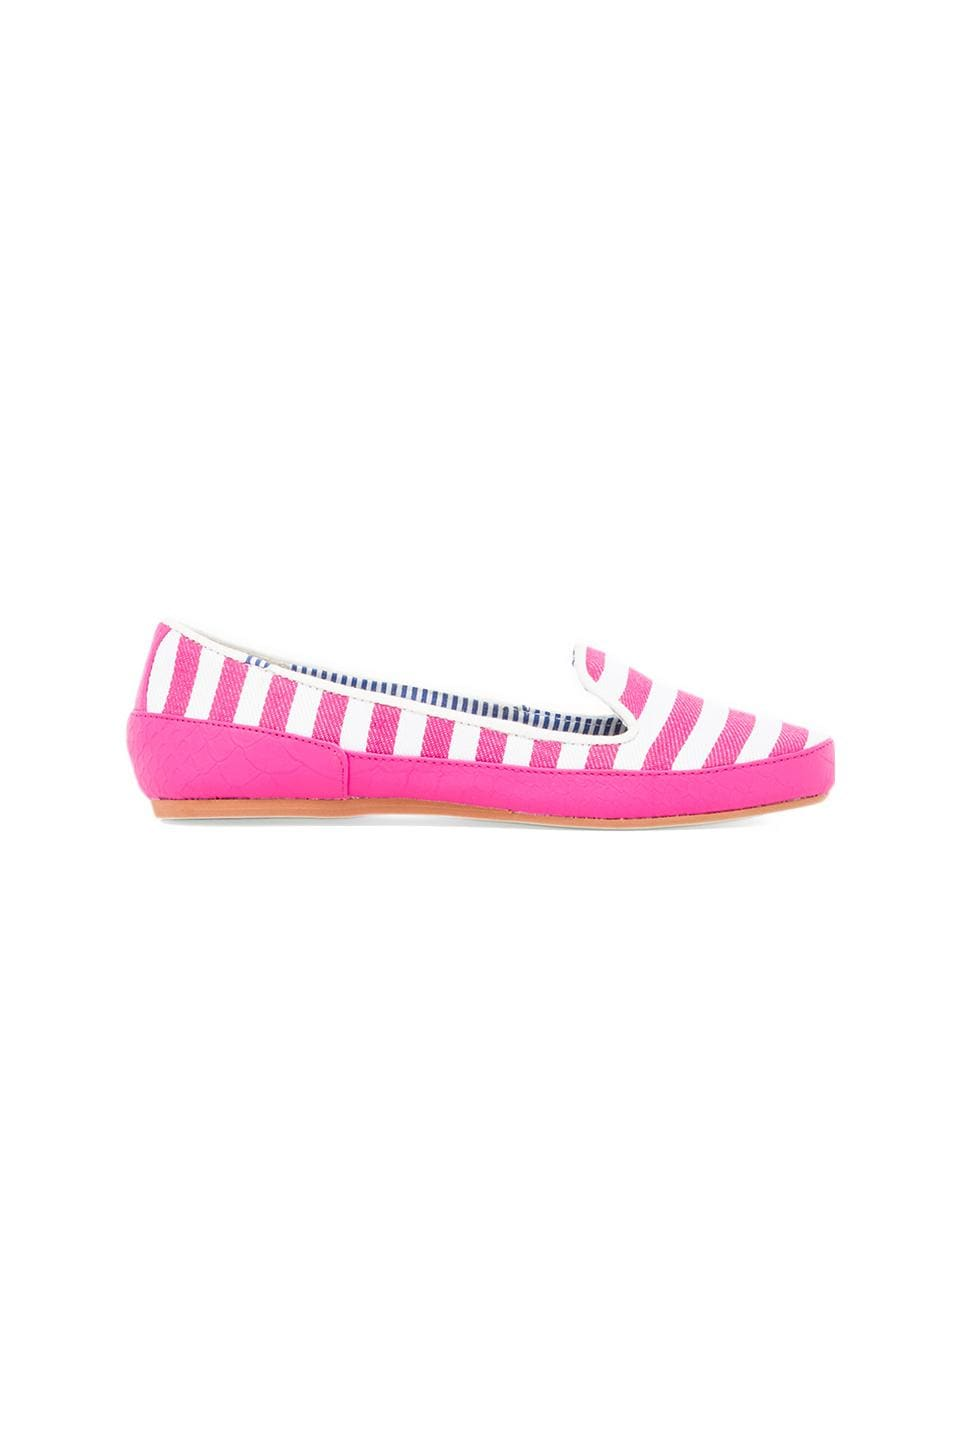 Charles Philip Shanghai Gaby Loafer in Pink Stripes